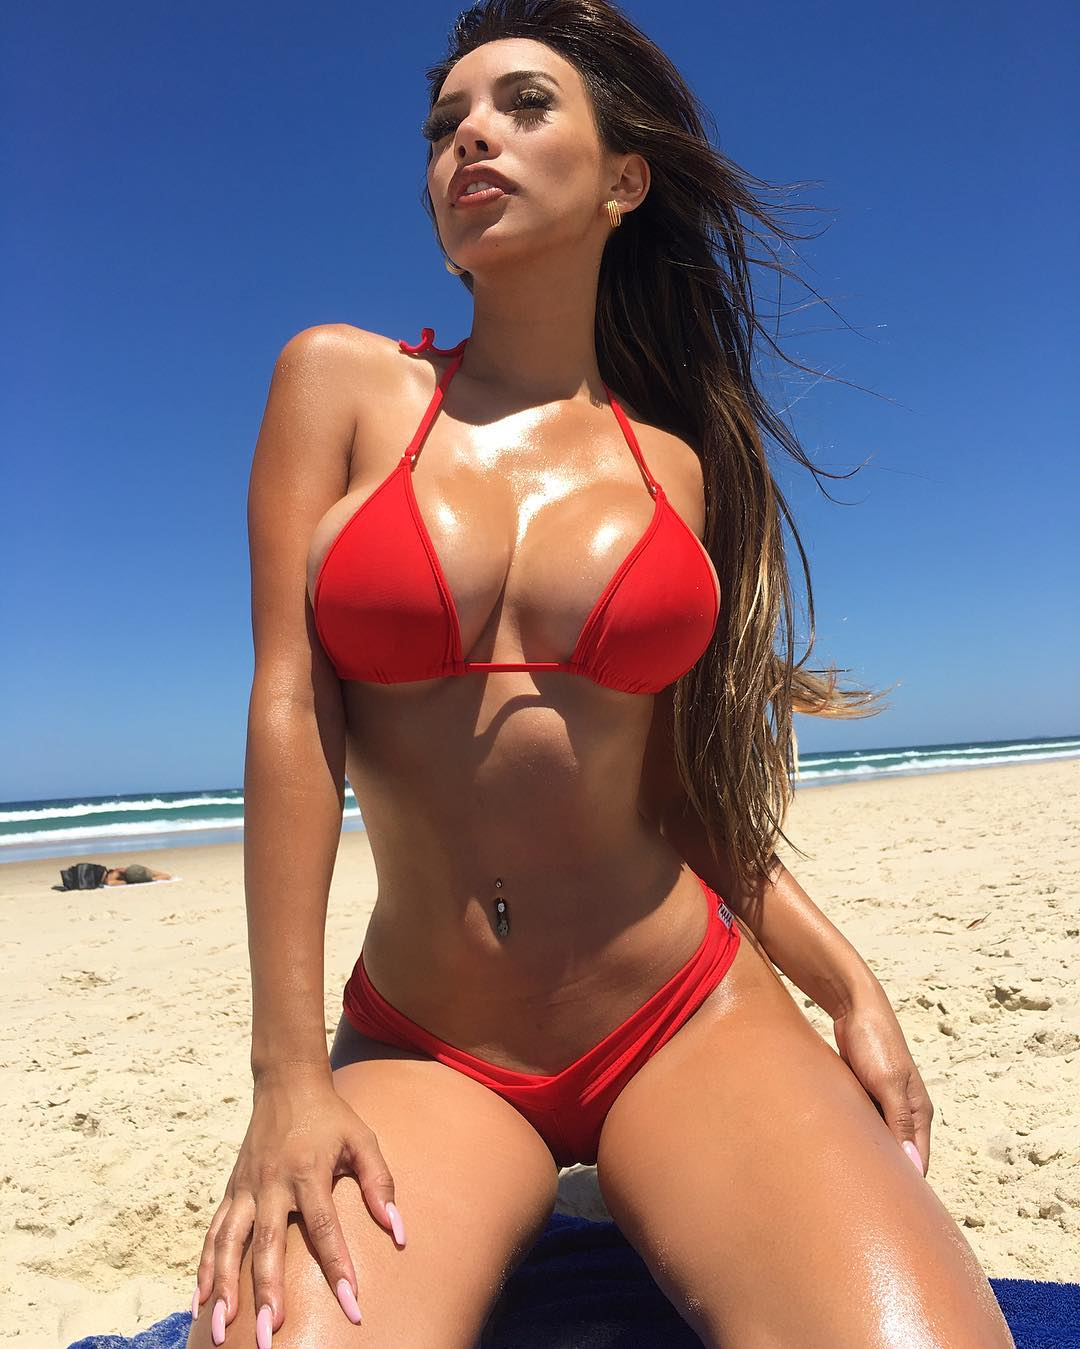 busty Paula Manzanal in a red bikini. Big tits. Cleavage